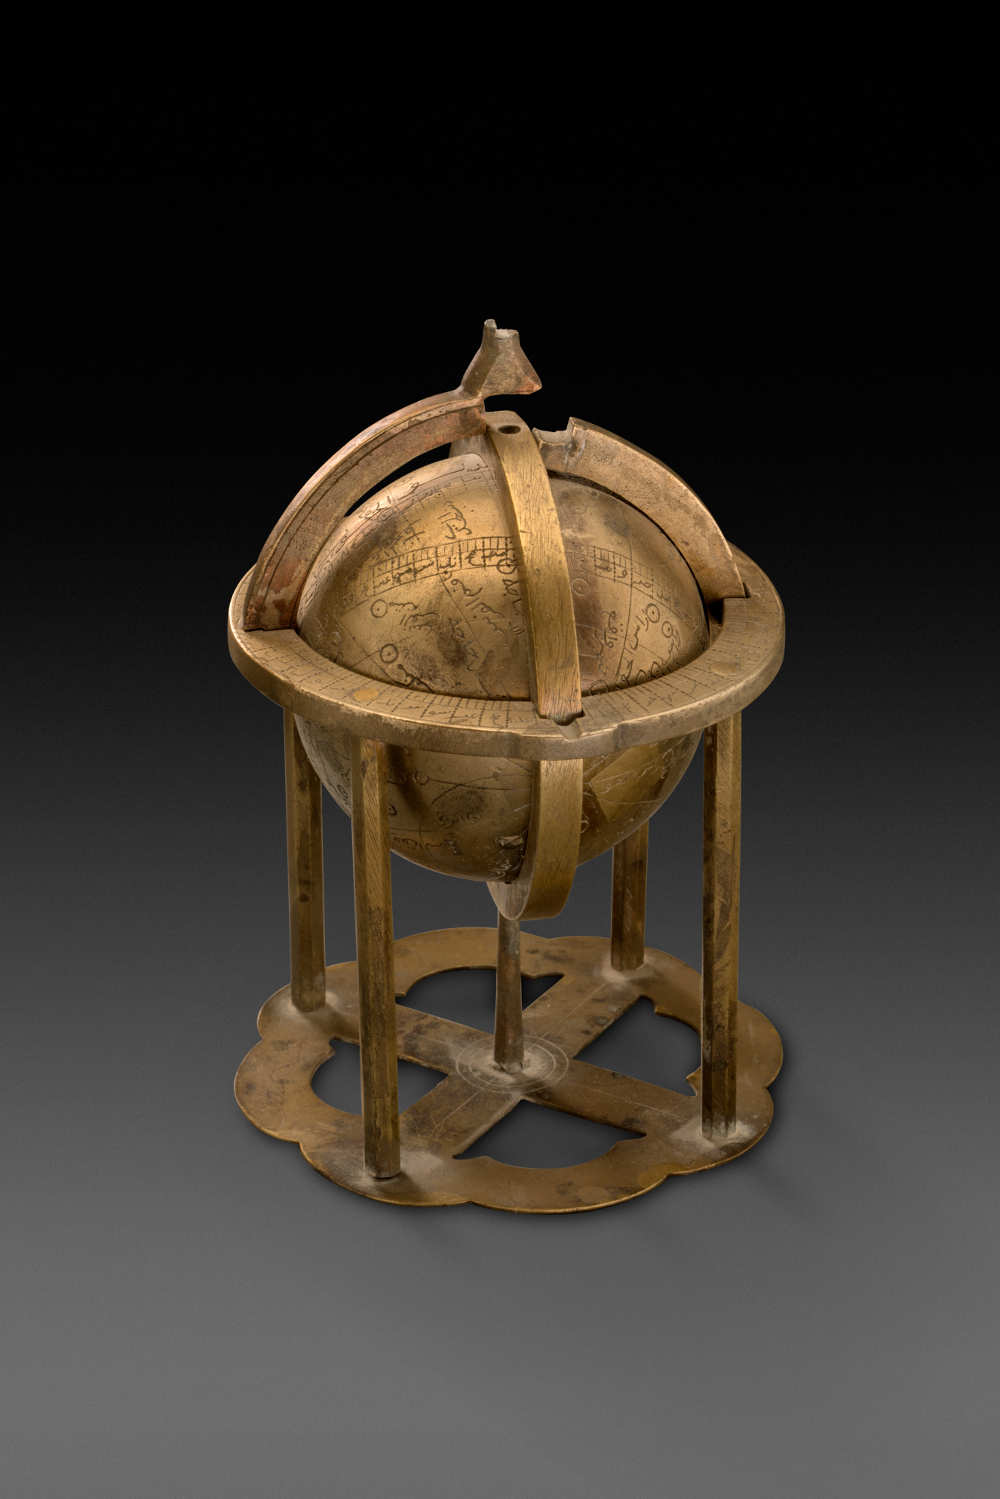 Celestial sphere - Fitted in a stand made by Zia ud-din Muhammad, Son of Mulla Qaim MuhammadBronzeAD 1676Probably Lahore, Punjab, PakistanArchaeological Survey of India, Mumtaz Mahal Museum, Red Fort